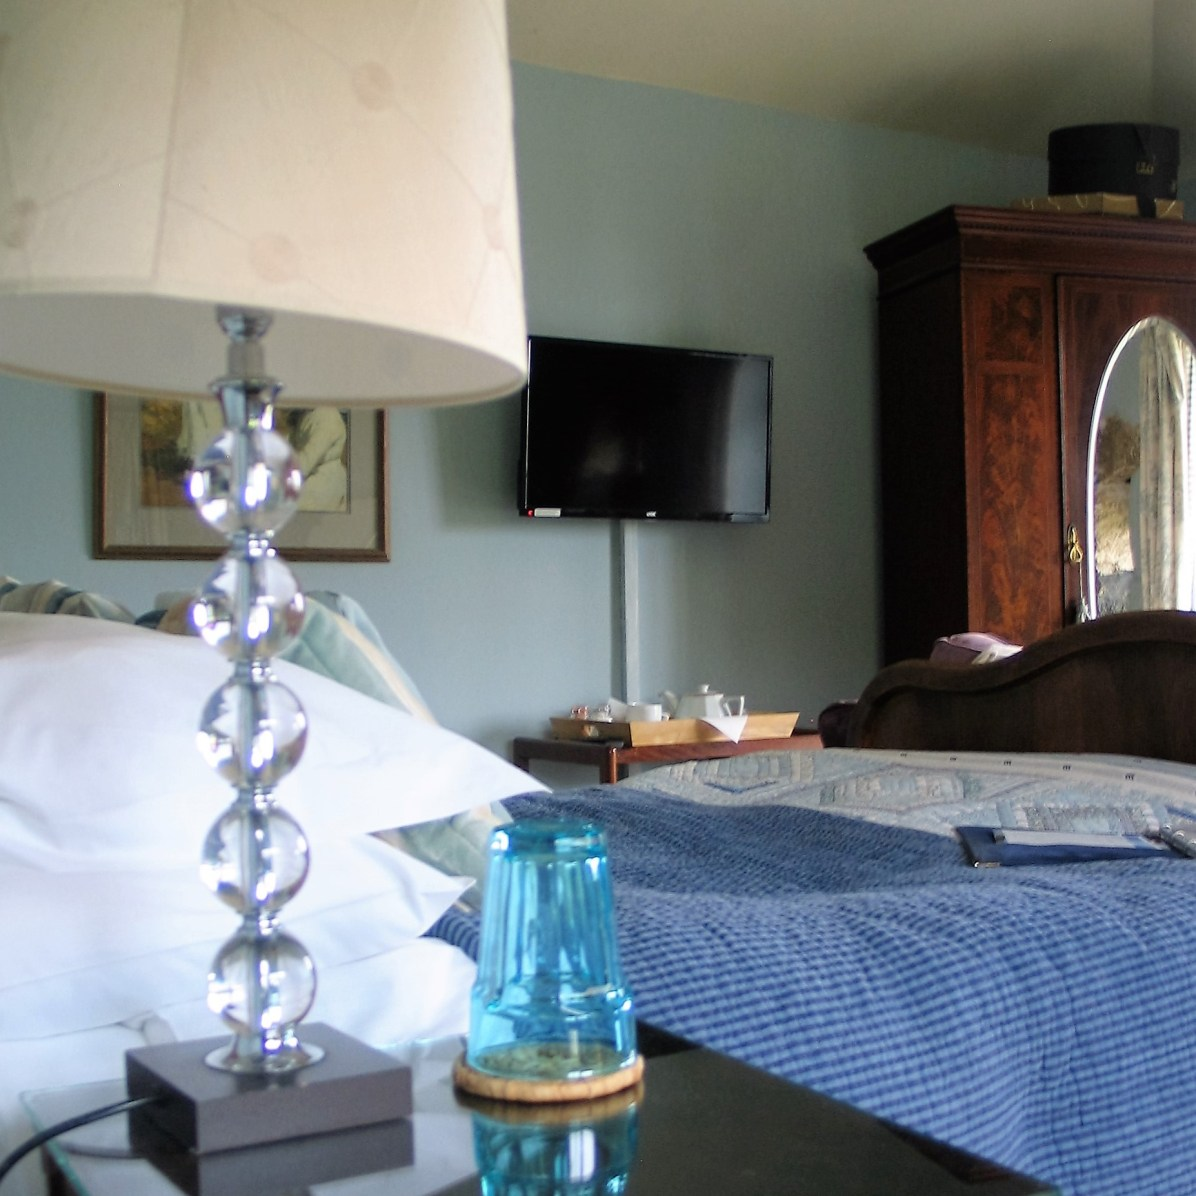 Each bedroom has a colour TV and DVD